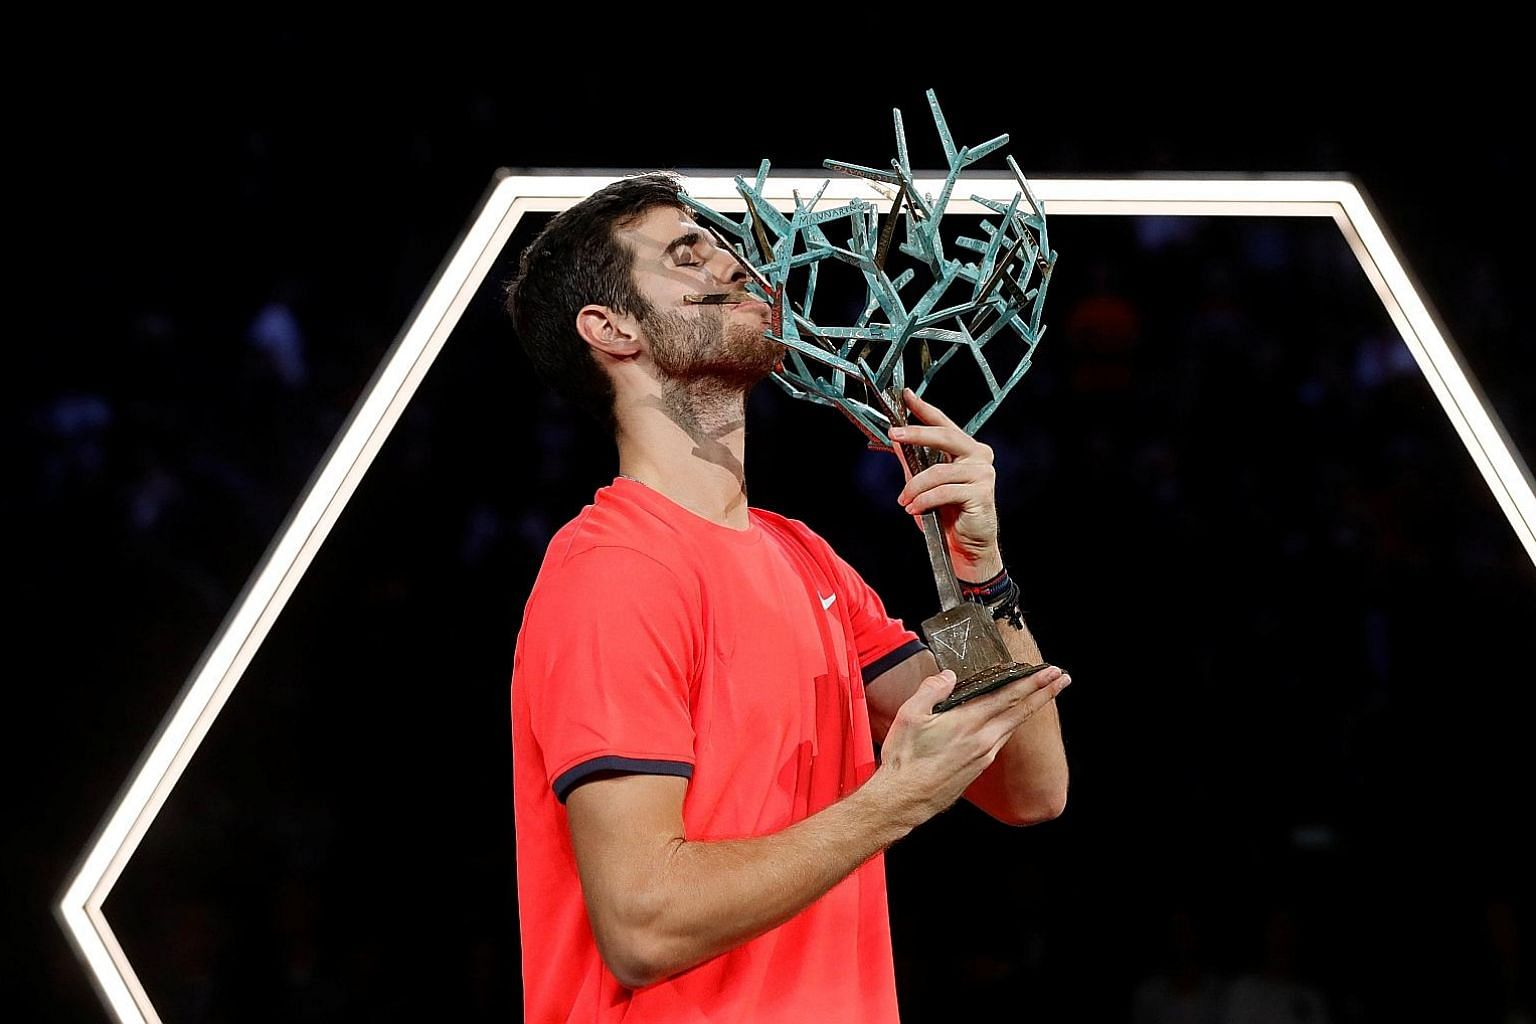 Russia's Karen Khachanov kissing his winner's trophy as he celebrates after overpowering Novak Djokovic 7-5, 6-4 in the Paris Masters final yesterday. The 22-year-old Russian has, for some time, been seen as one of the rising young talents of the spo